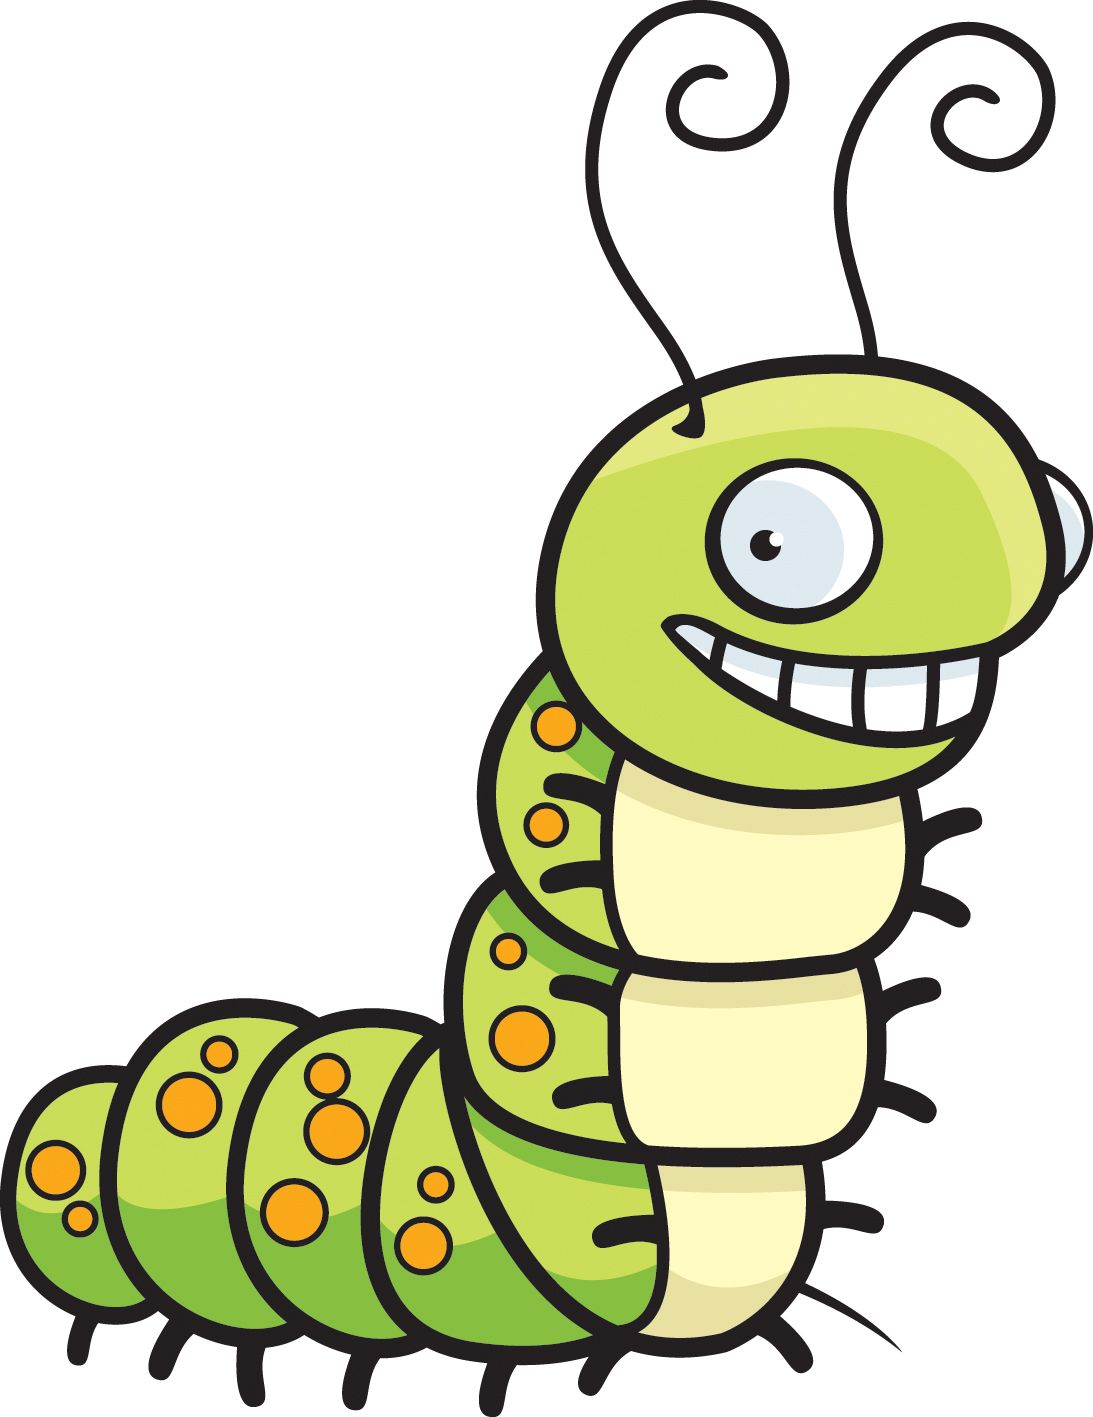 caterpillar butterfly clipart - Google Search | crafts! Ideas! make ...